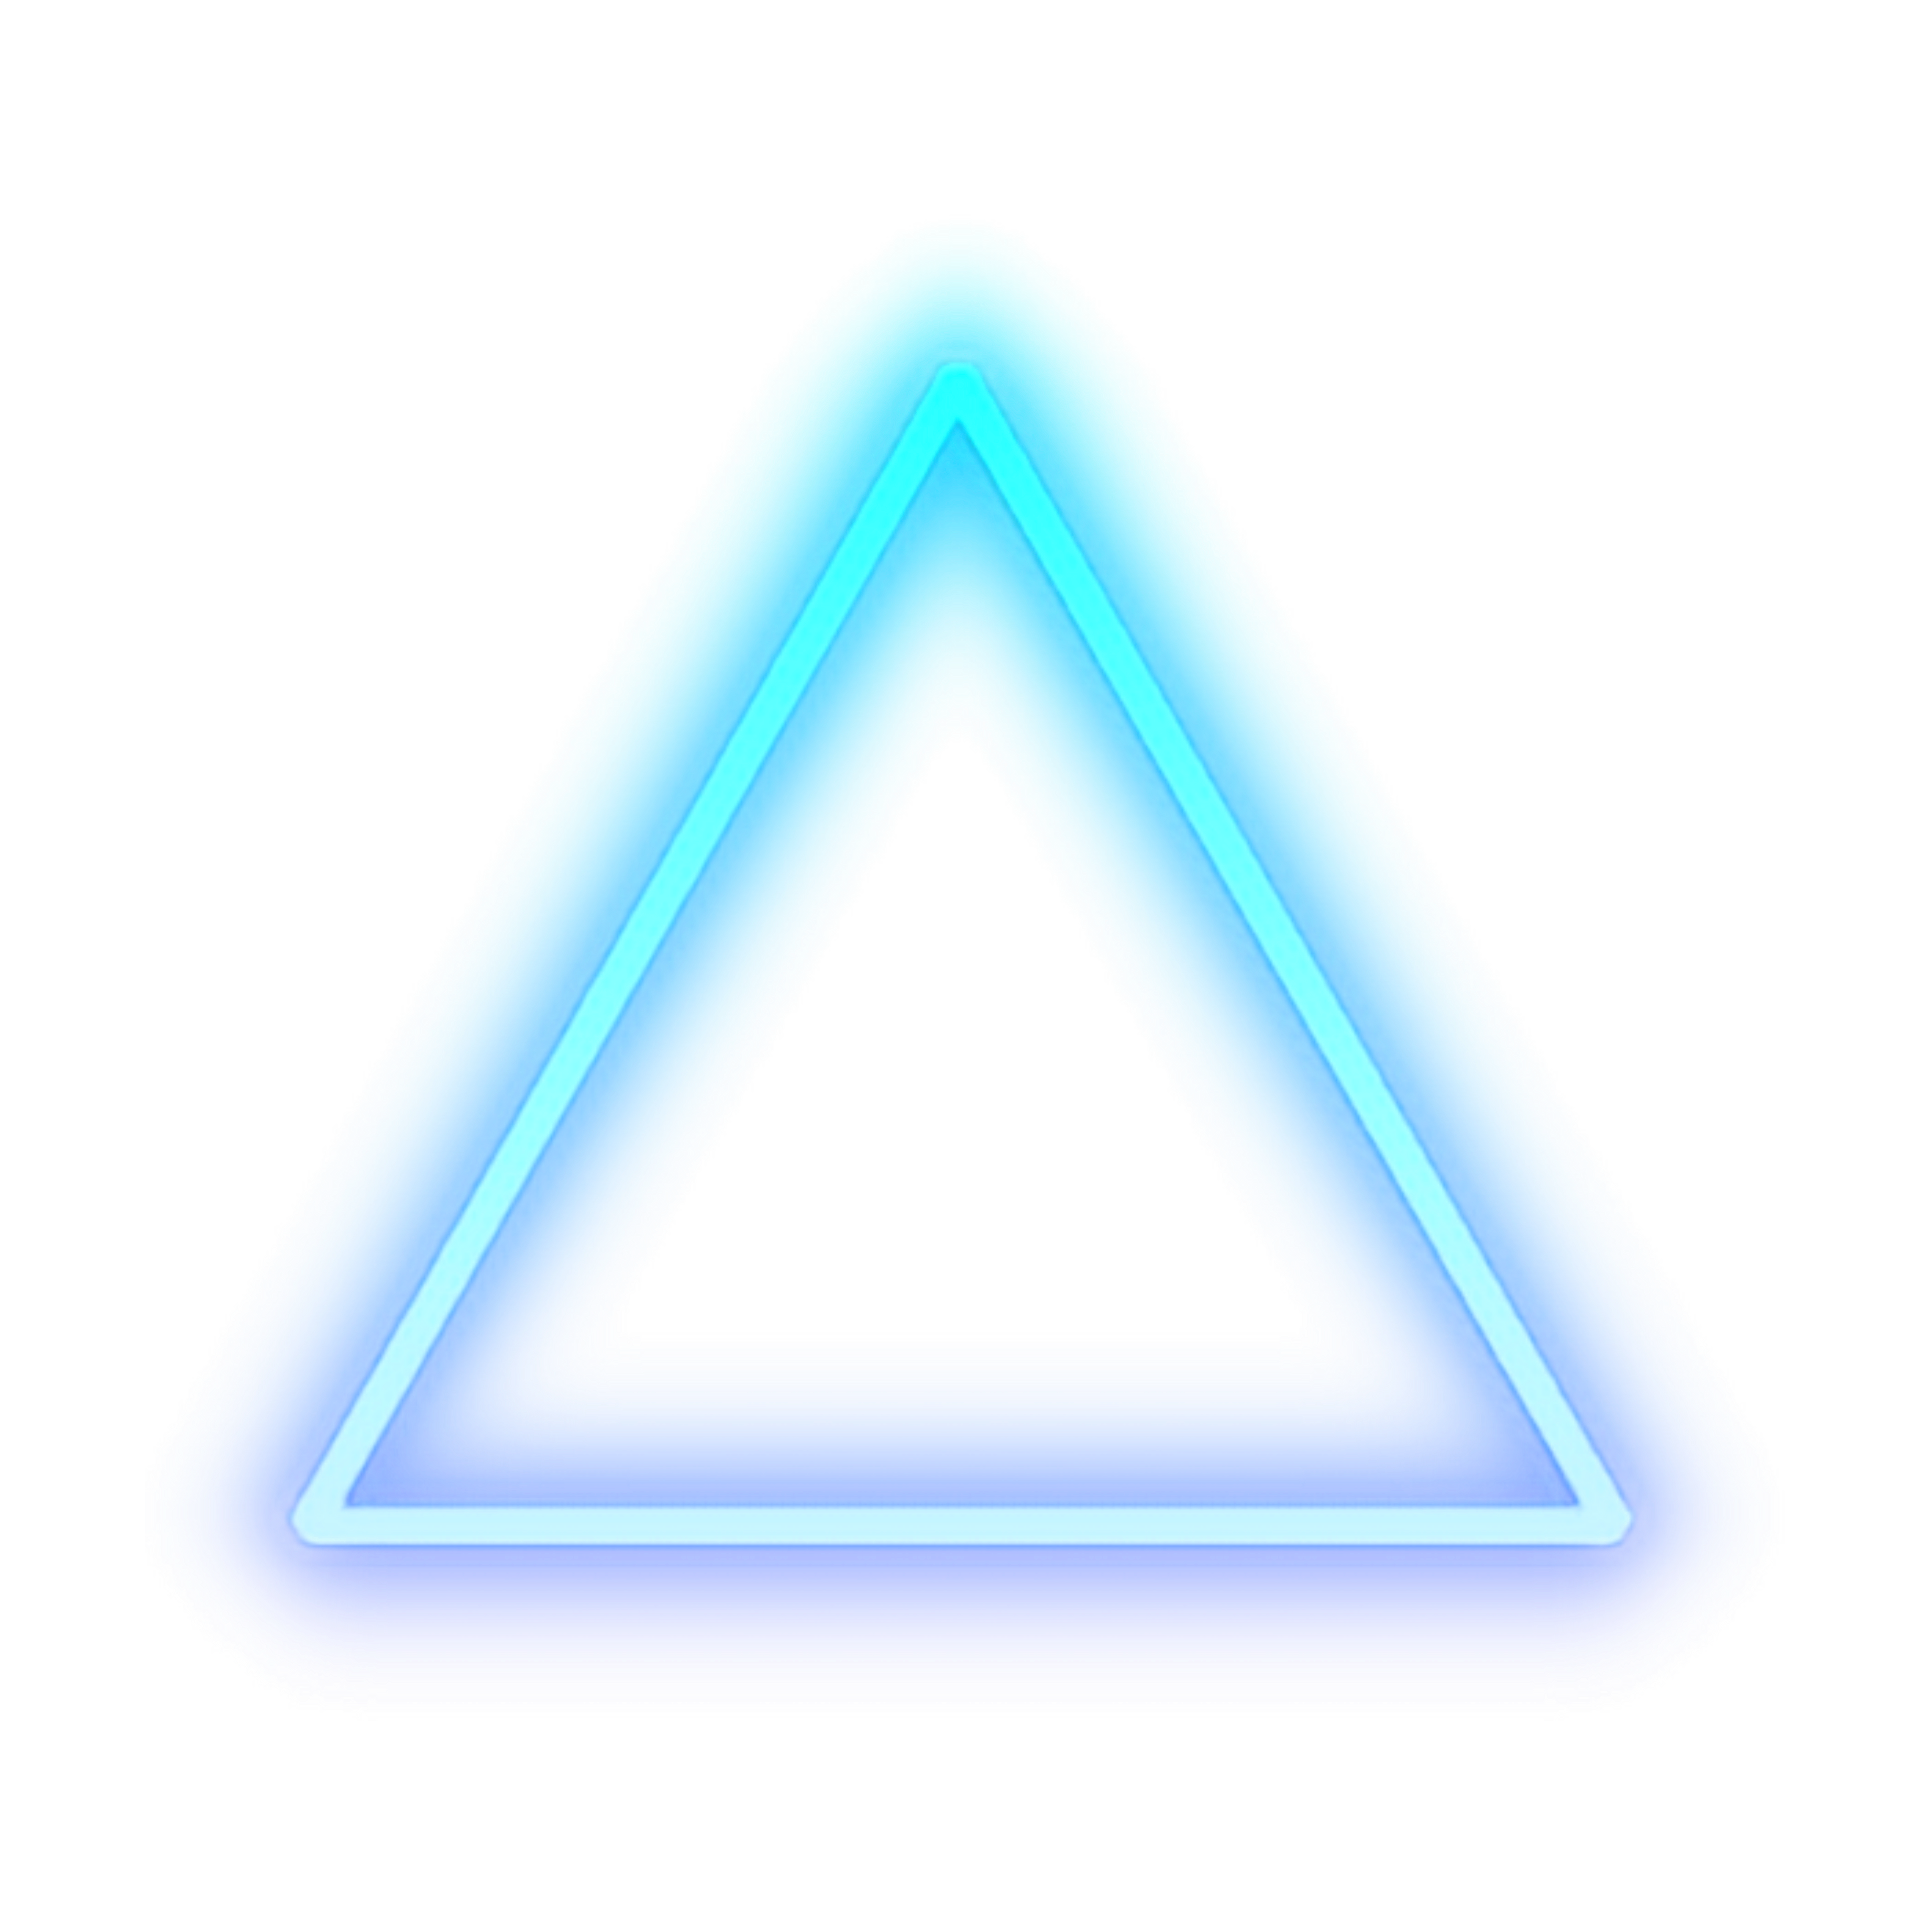 Triangle Light Sticker Neon Sign Human Detroit: PNG Image